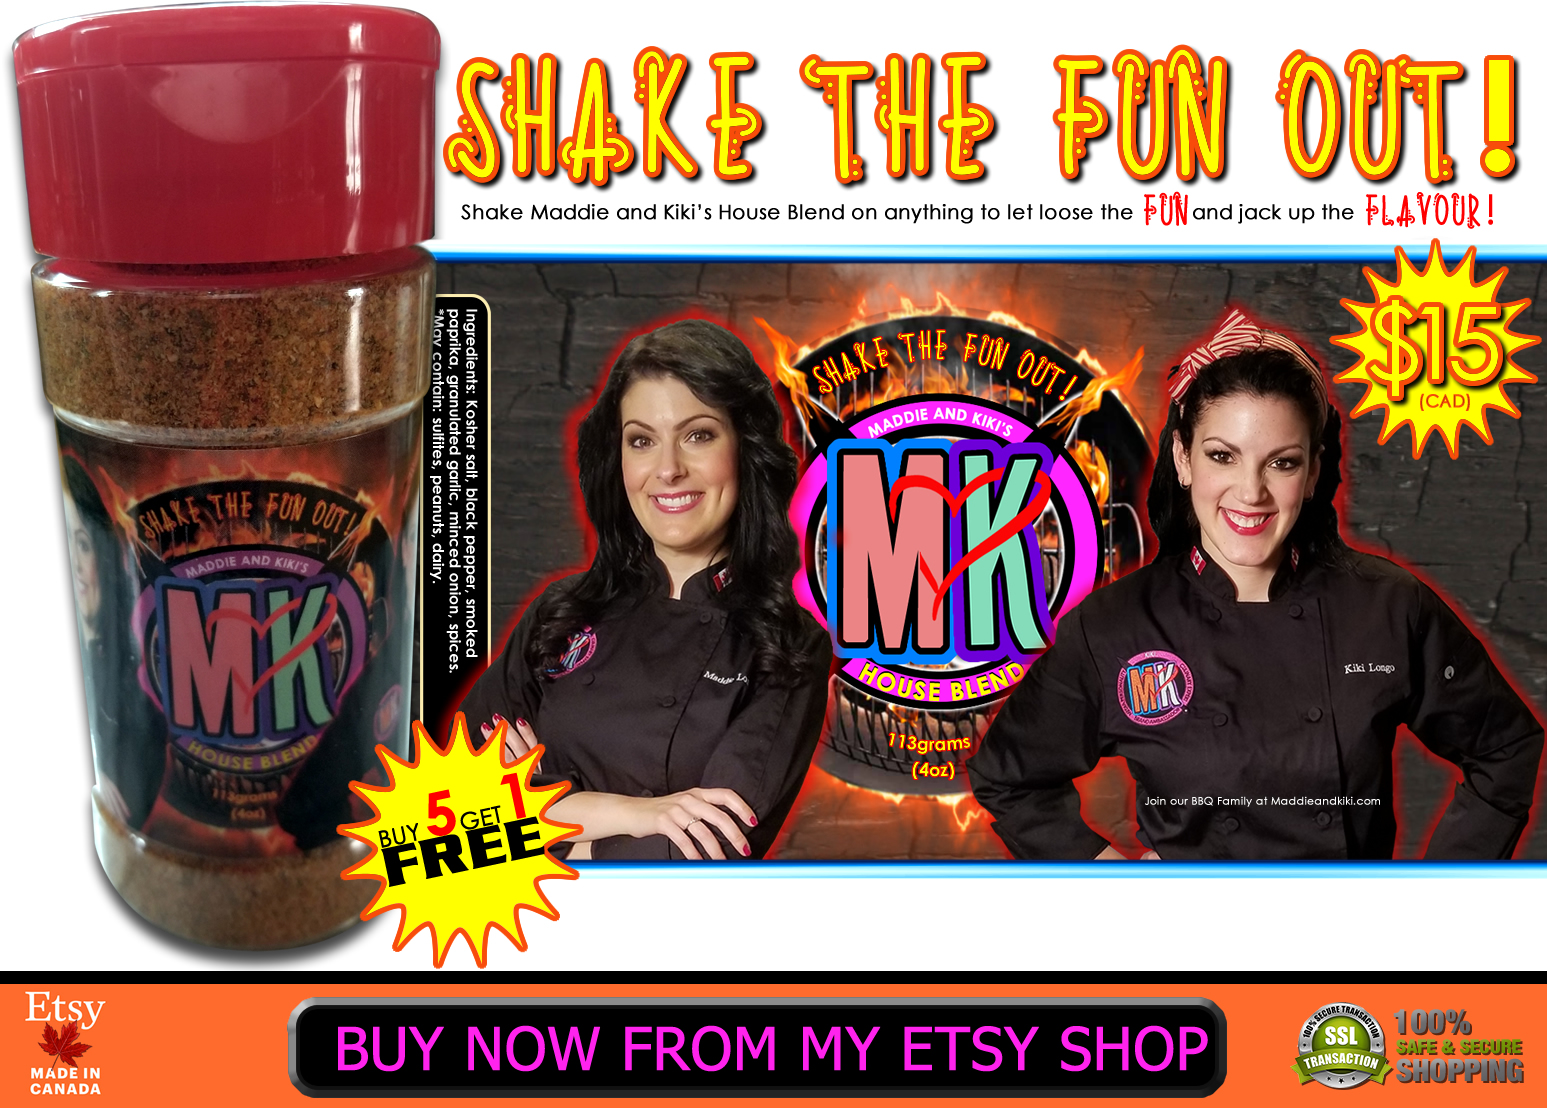 Shake the Fun out!